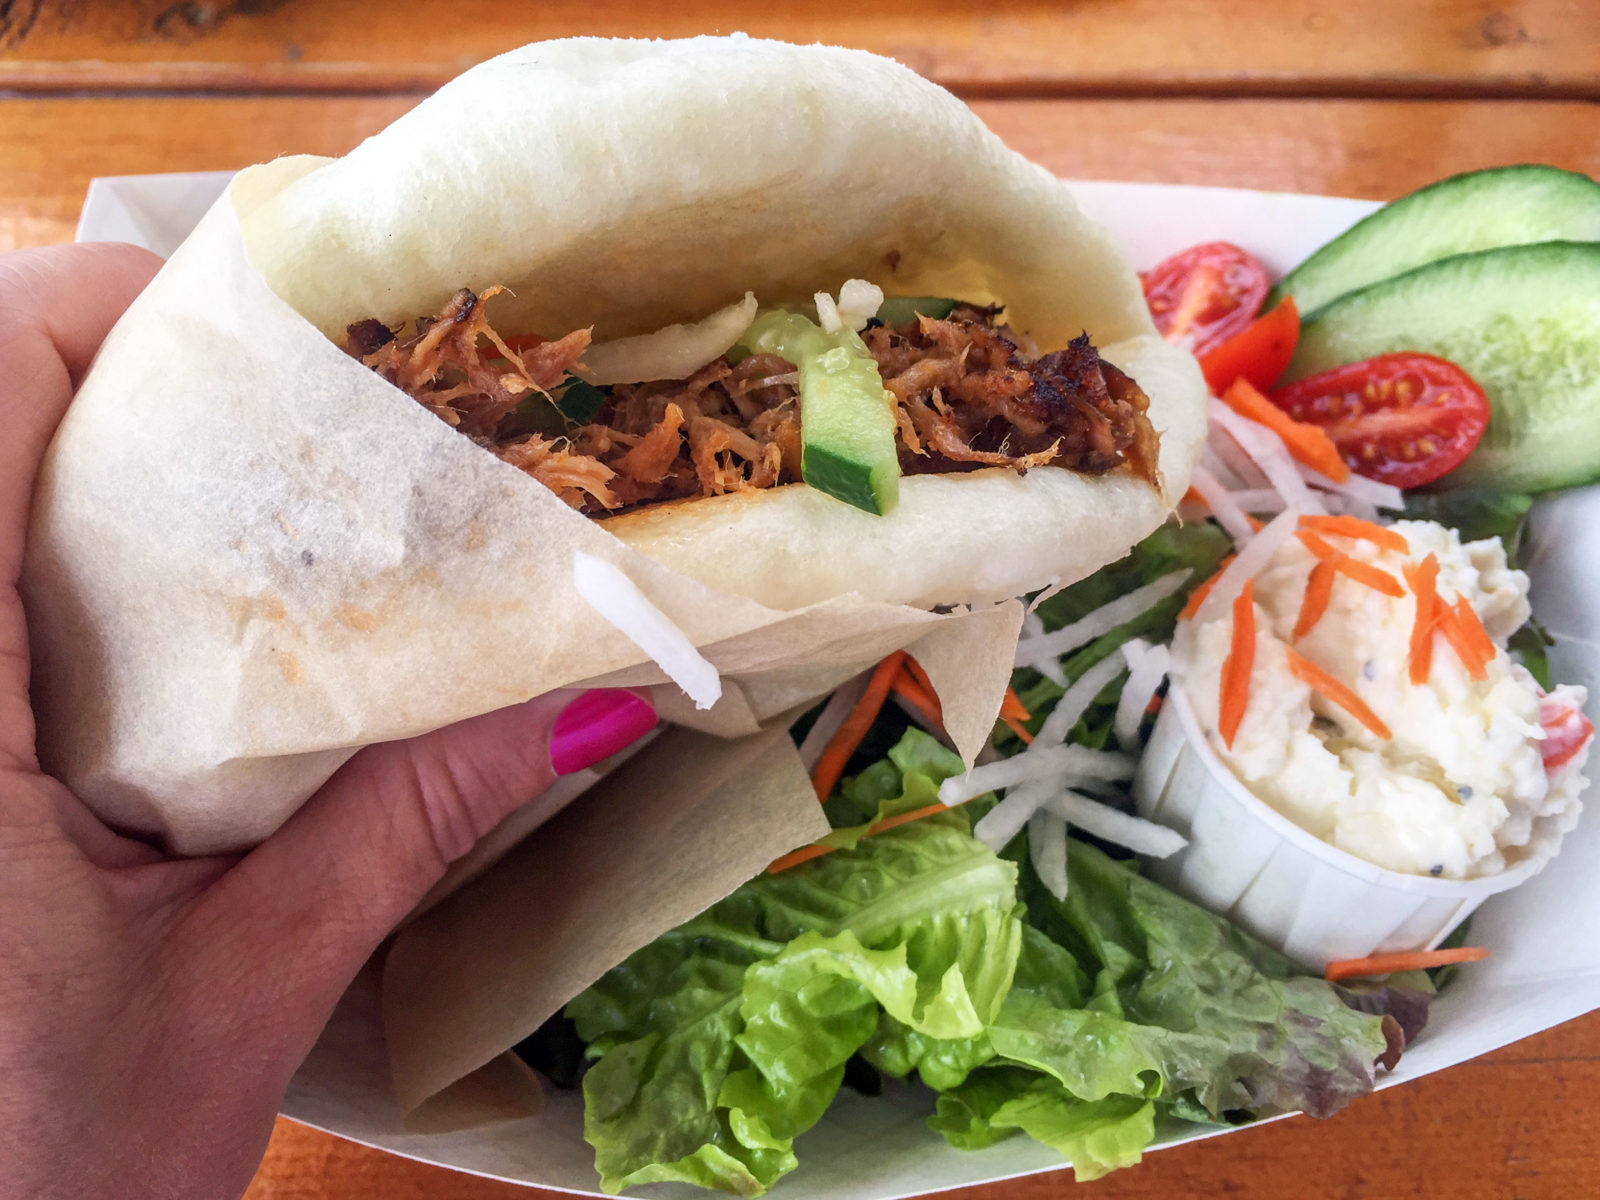 Steamed bun with smoked pulled pork from Kauai, Hawaii, food truck